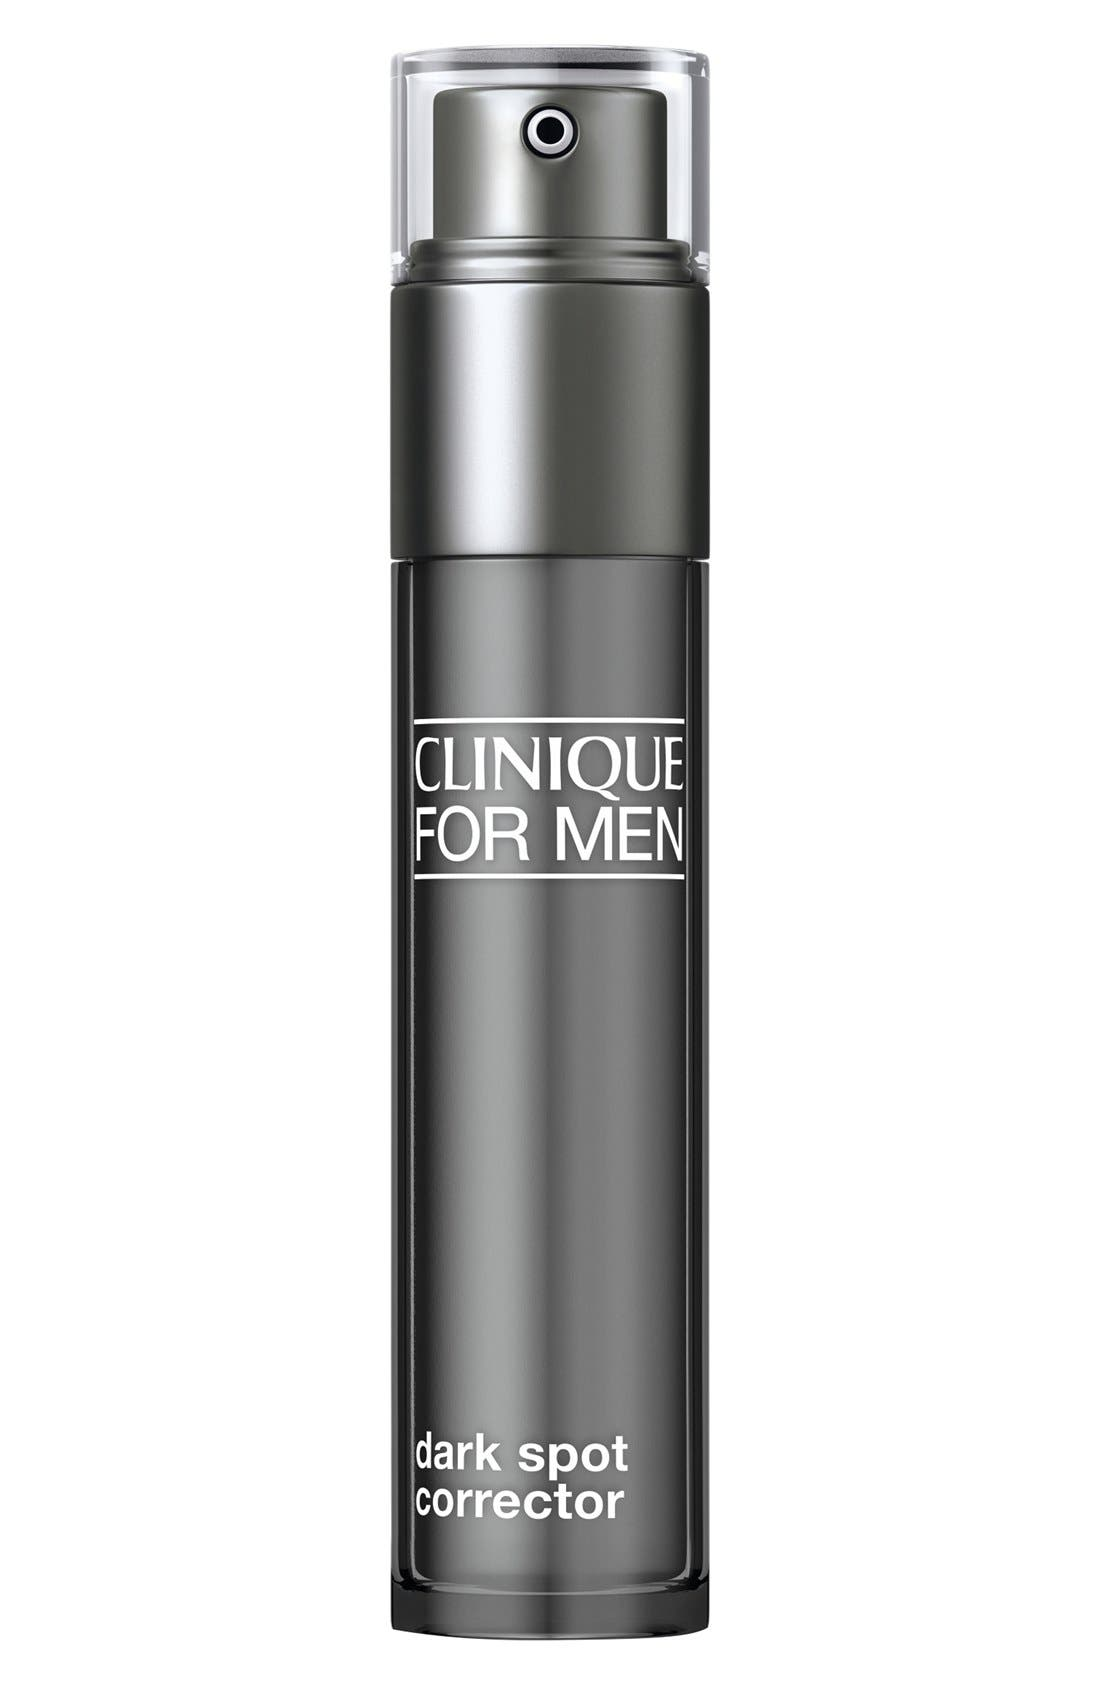 Clinique for Men Dark Spot Corrector